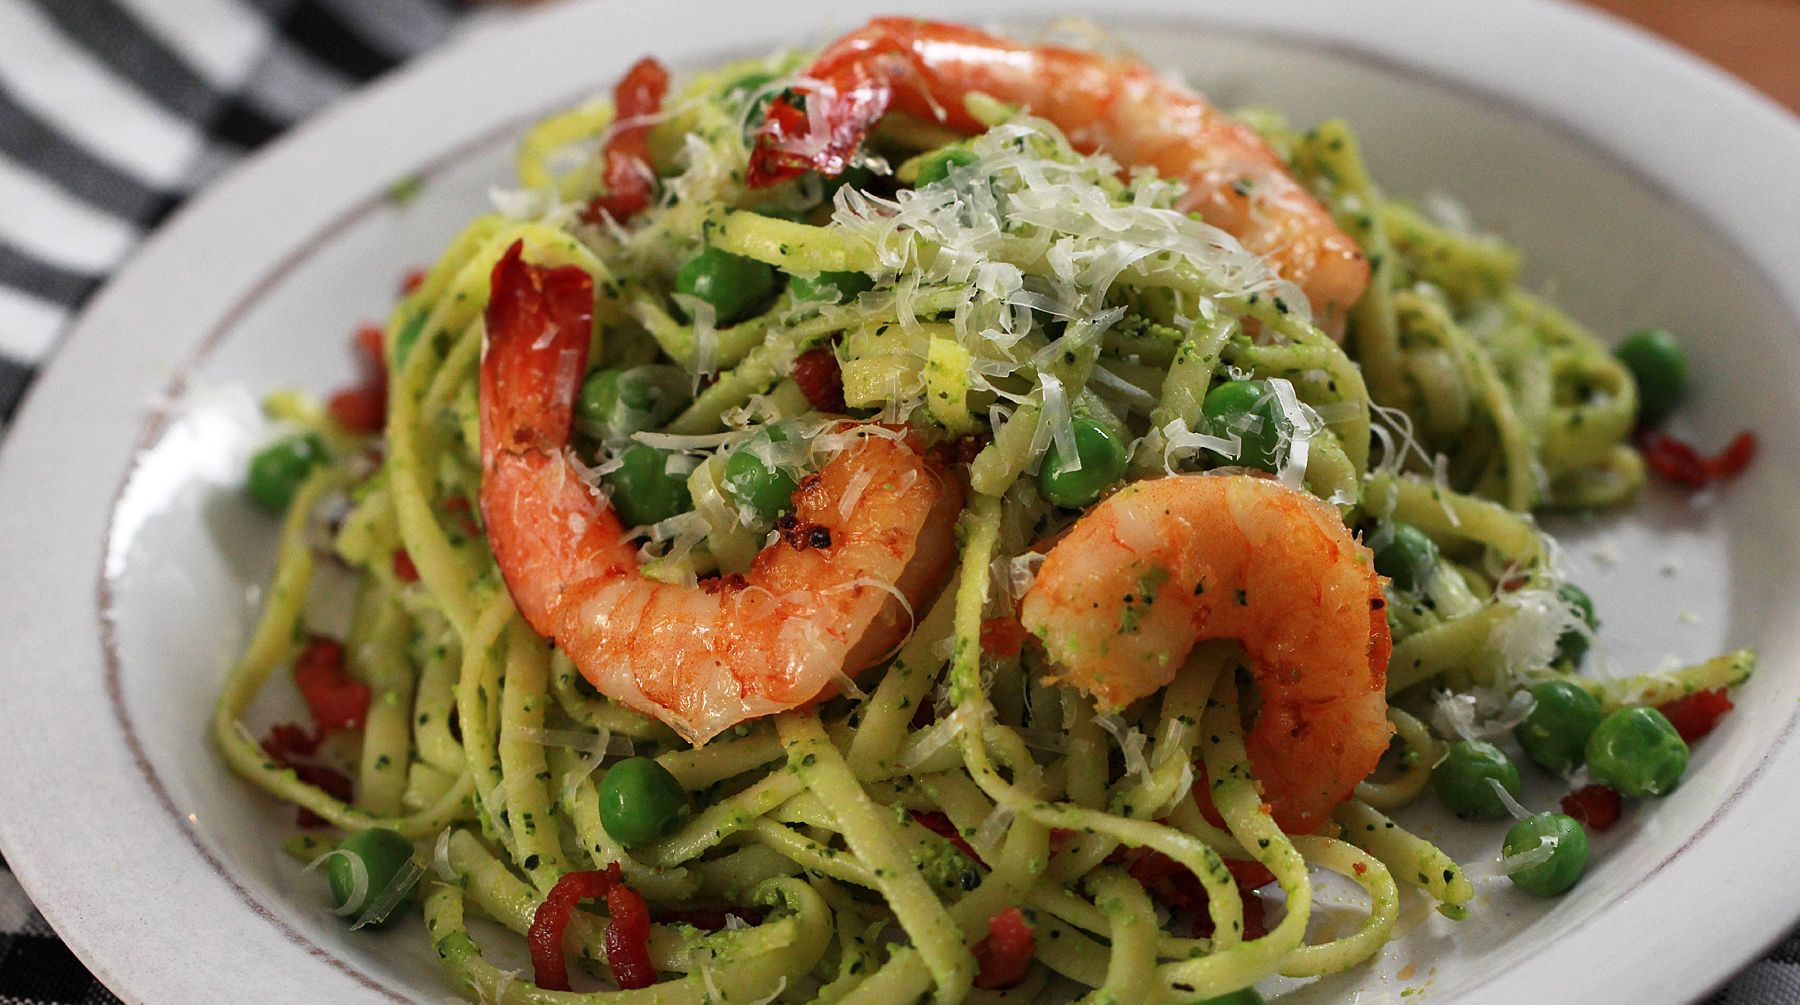 Try this quick and easy pasta recipe by haylie duff from real girls try this quick and easy pasta recipe by haylie duff from real girls kitchen forumfinder Images